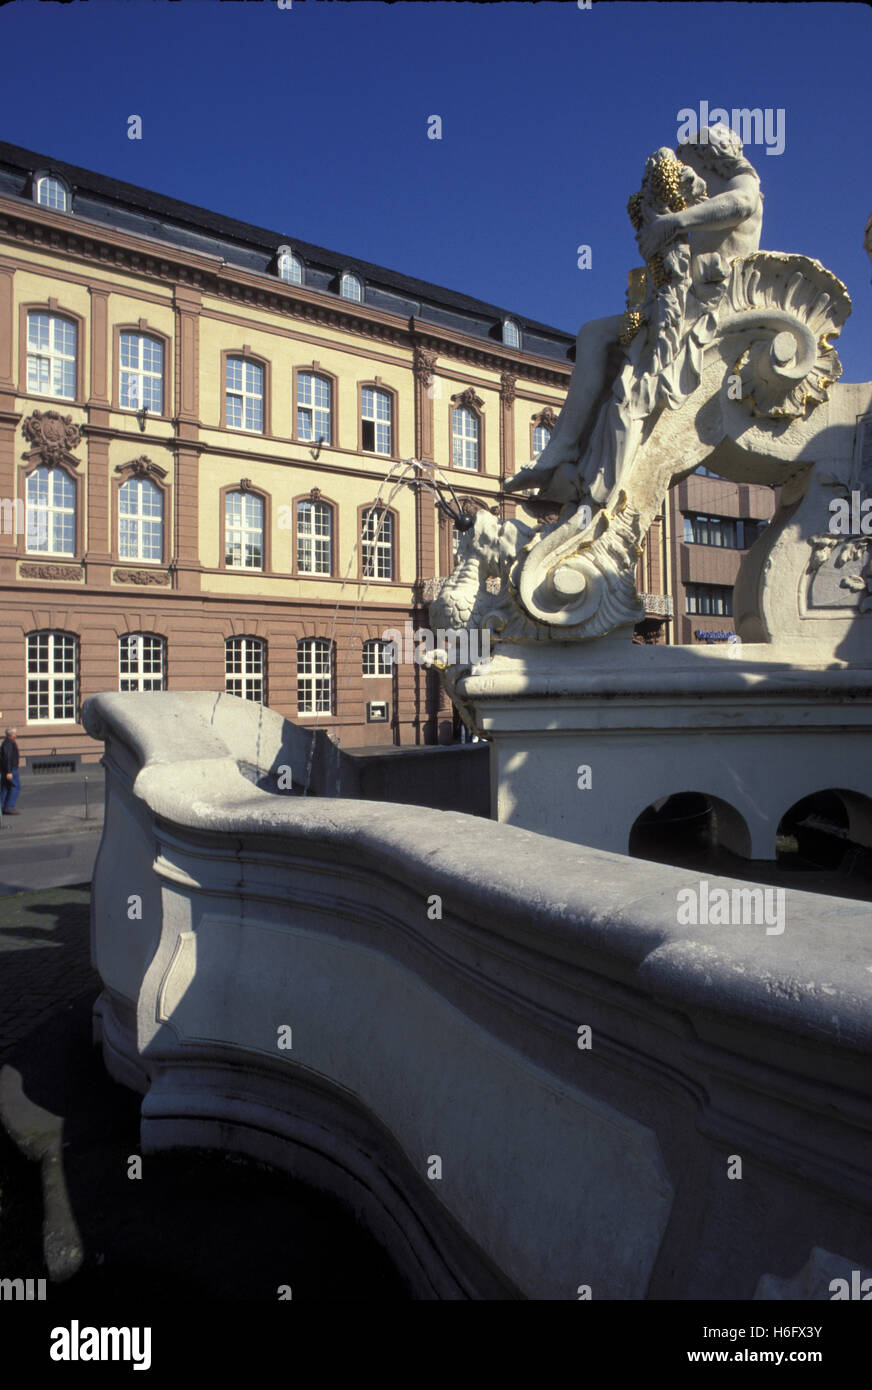 Germany, Trier, the Georgsfountain at the Kornmarket in front of the old Postoffice. - Stock Image